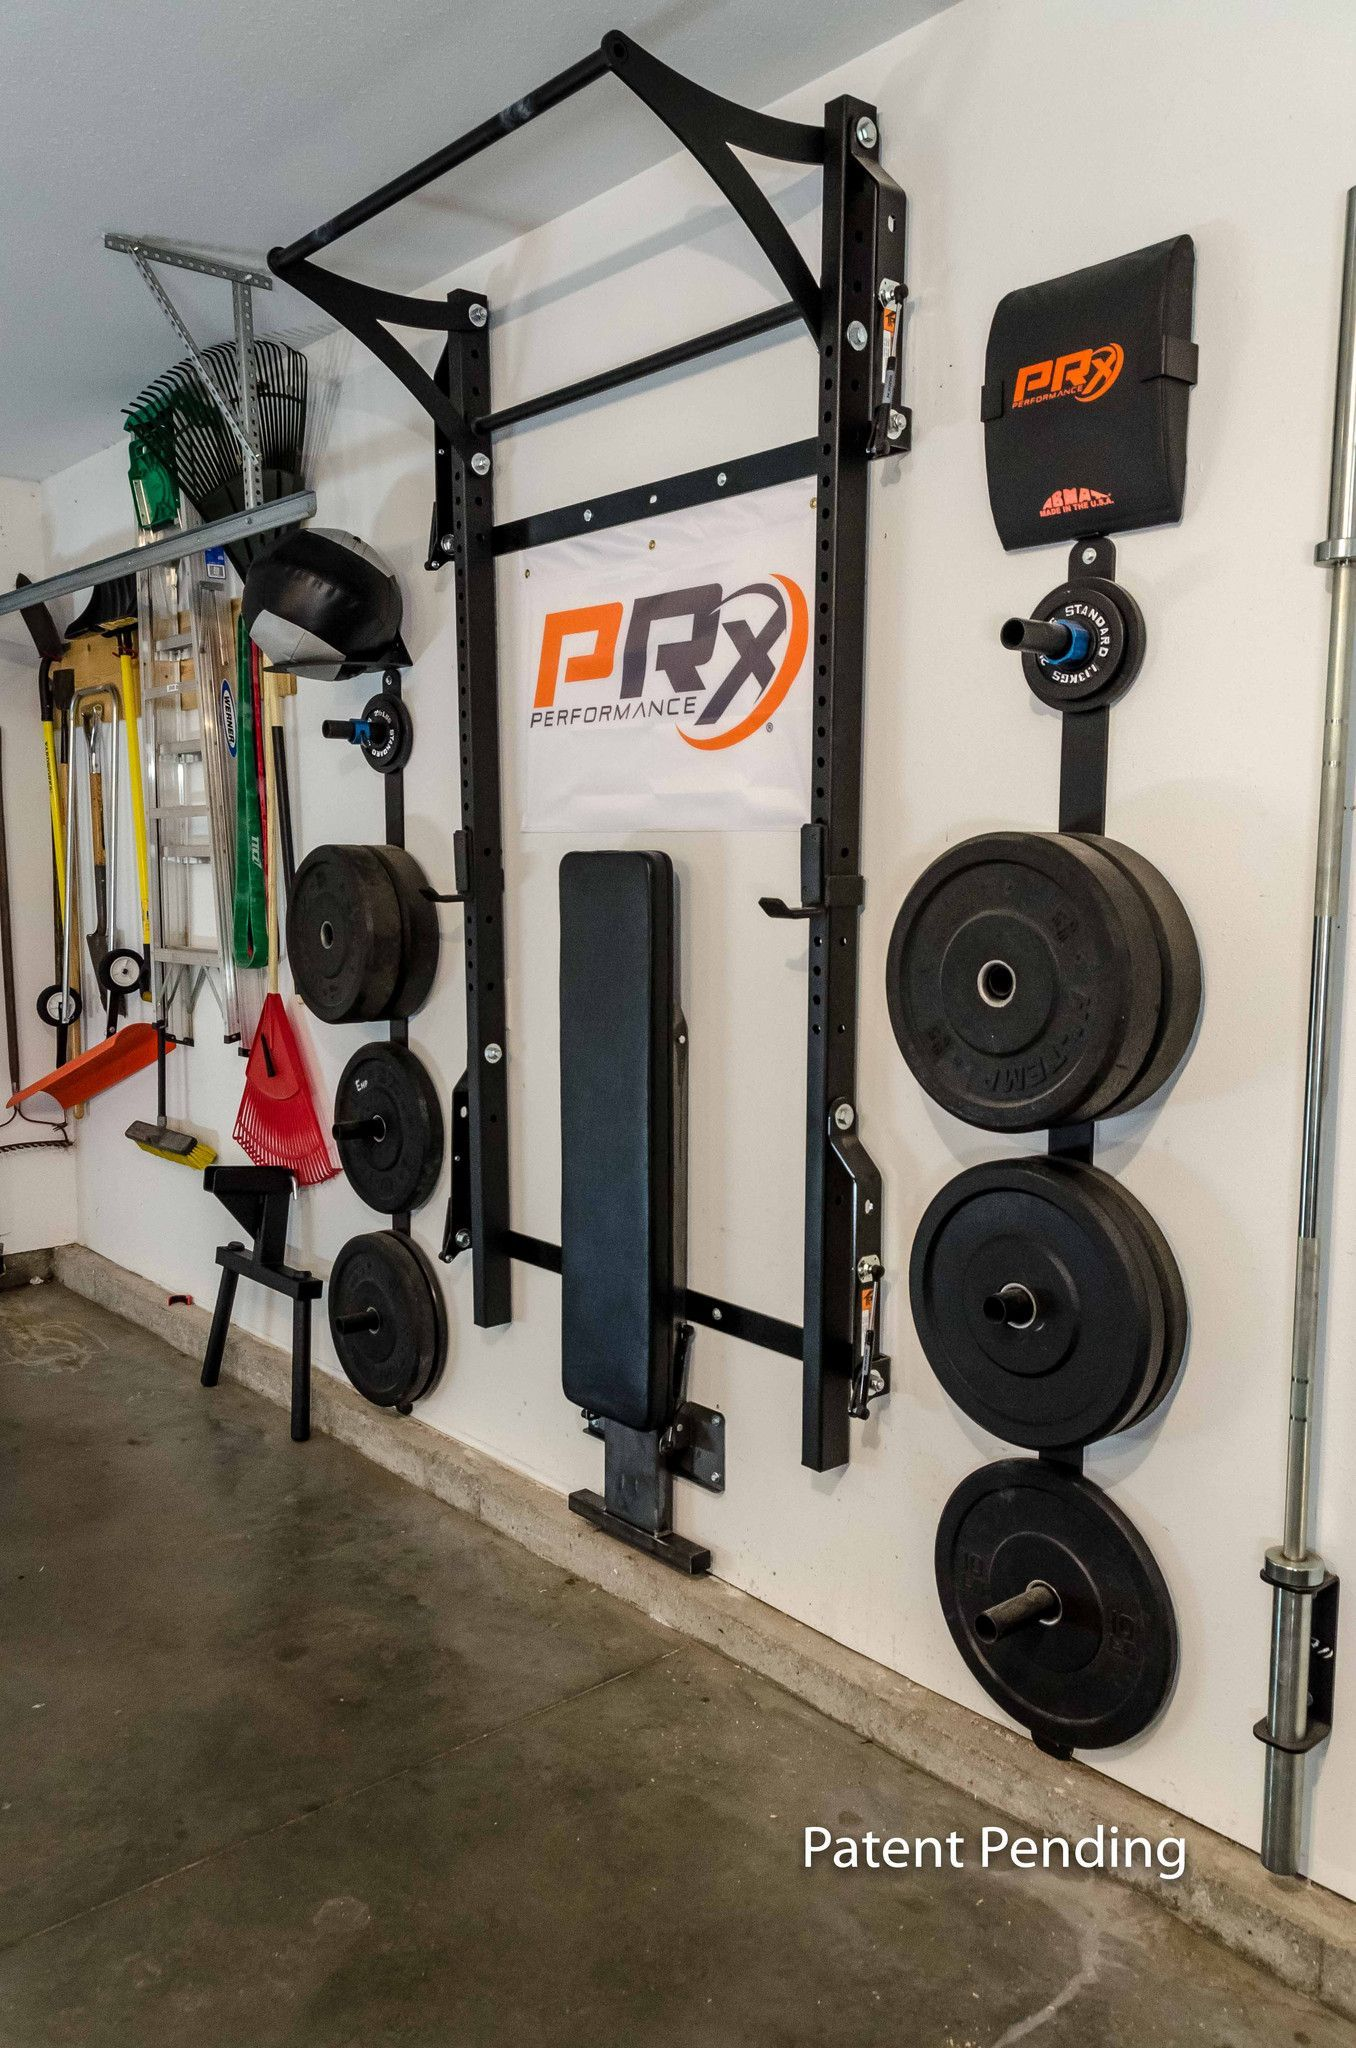 prx profile folding bench its finally here after months of